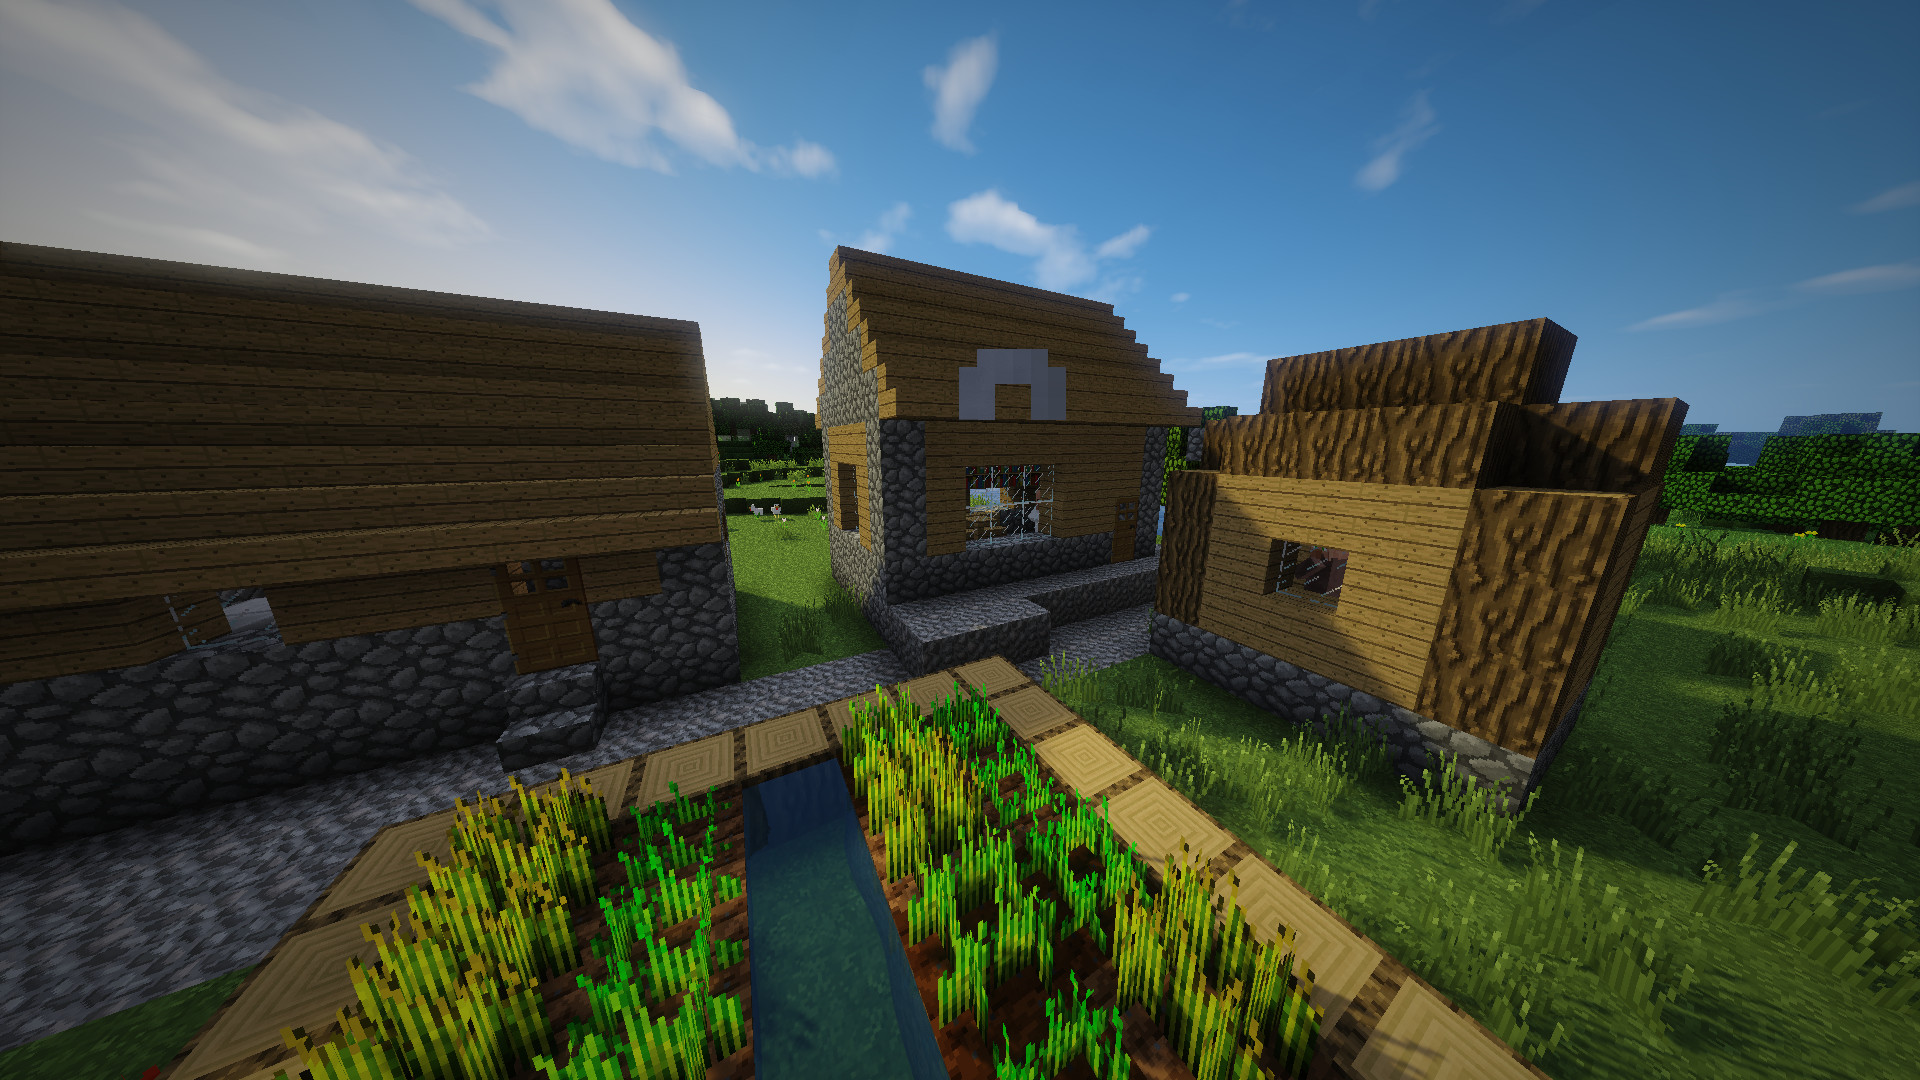 Minecraft Images Wallpaper 83 Images